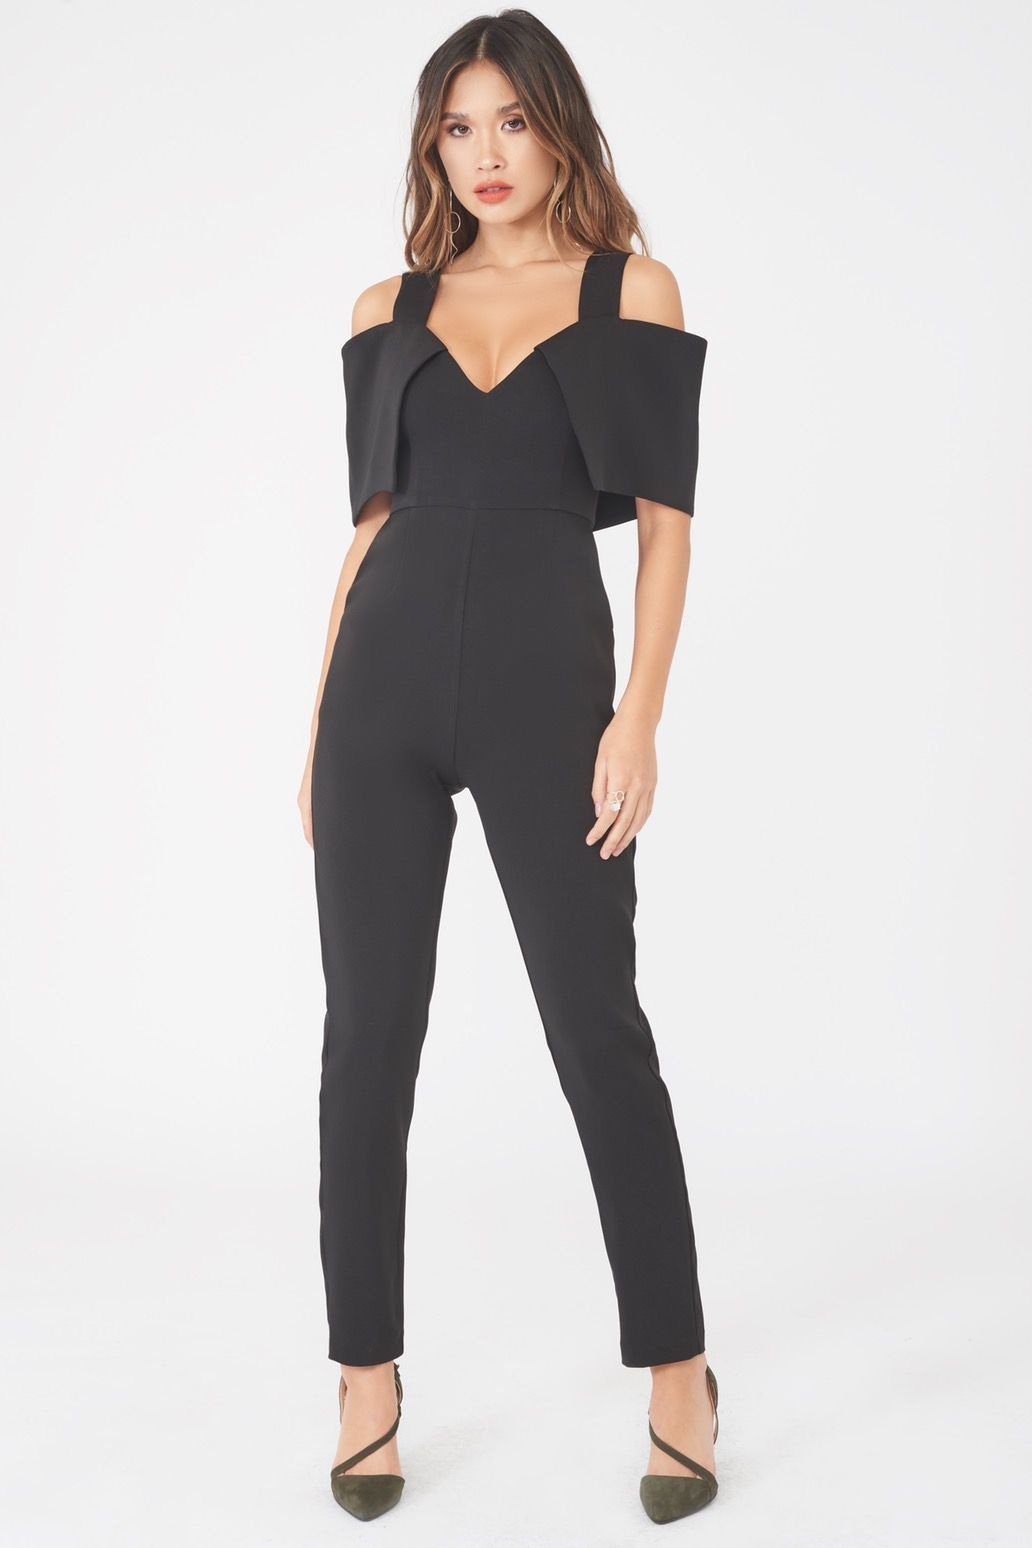 Image of Folded Over Tailored Jumpsuit in Black